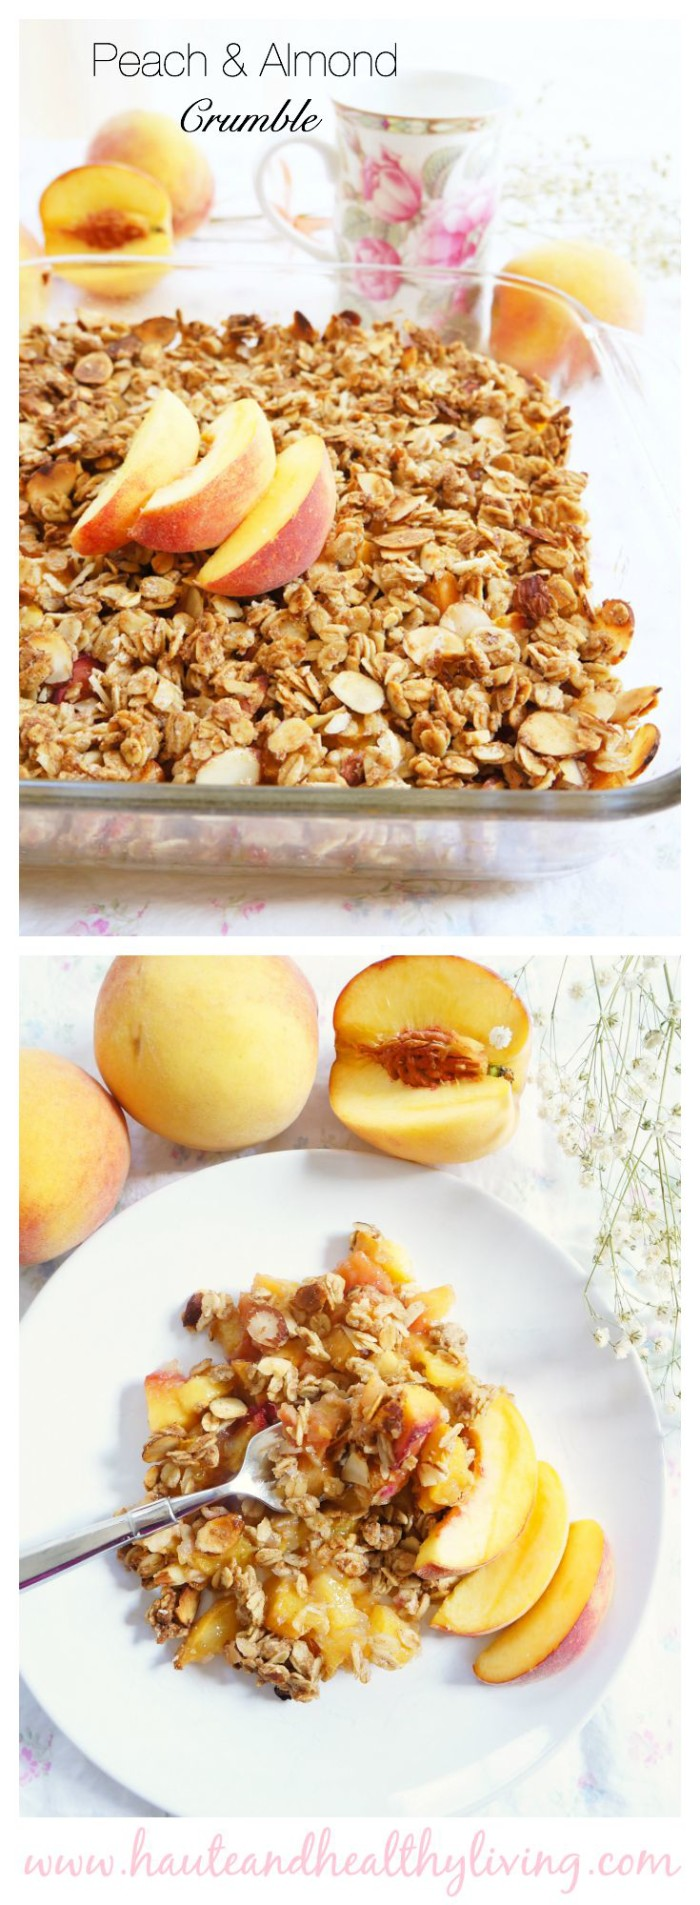 Peach & Almond Crumble | Haute & Healthy Living